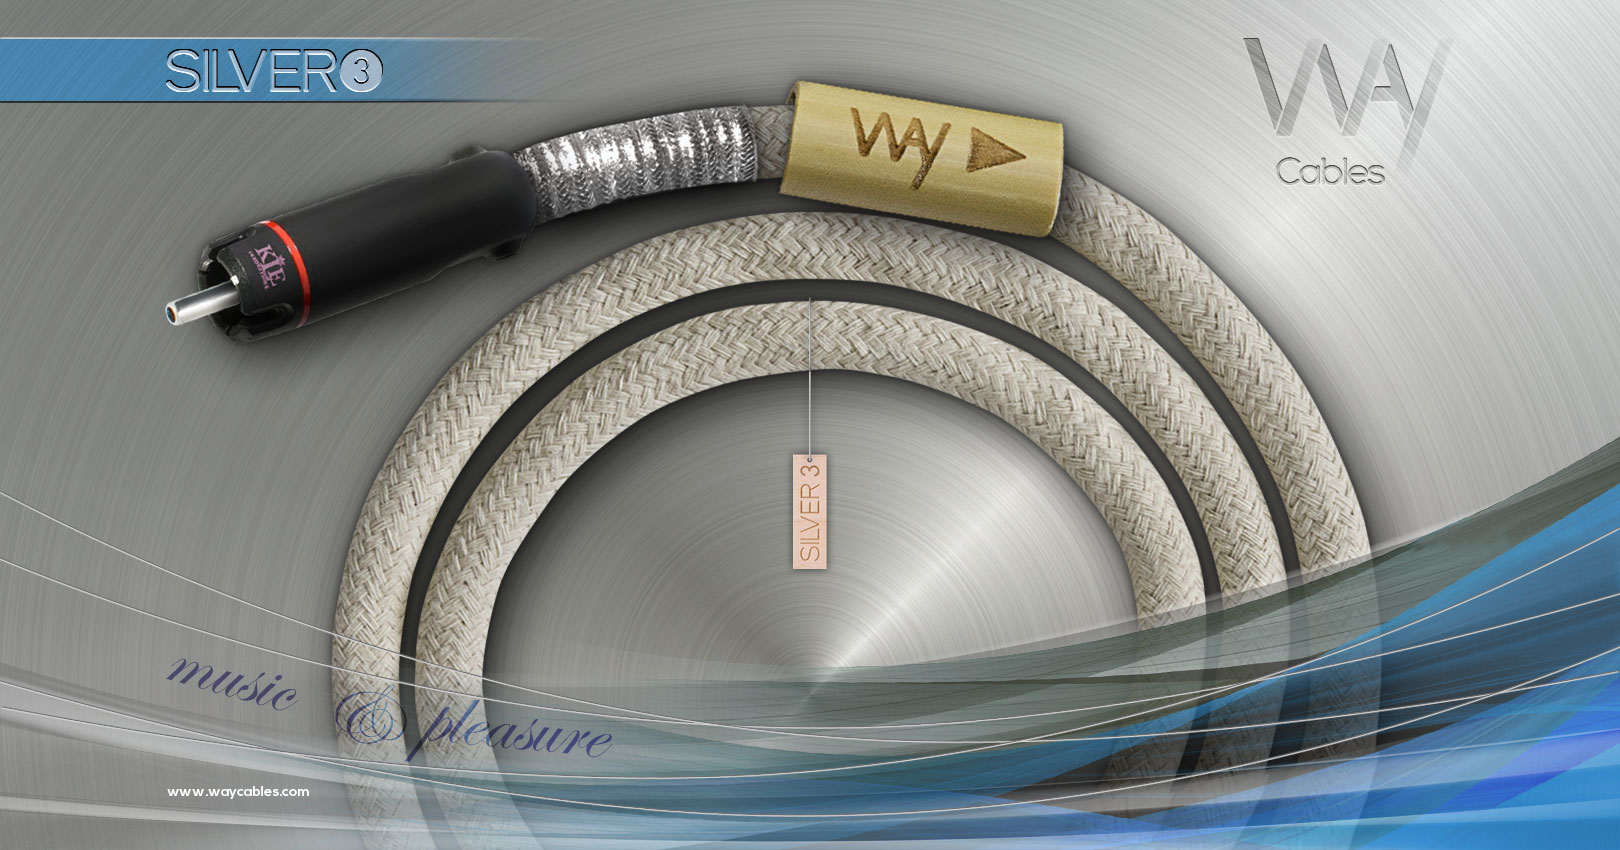 Way Cables SILVER 3 interconnect - White cotton - KLEI Pure Harmony RCA plugs